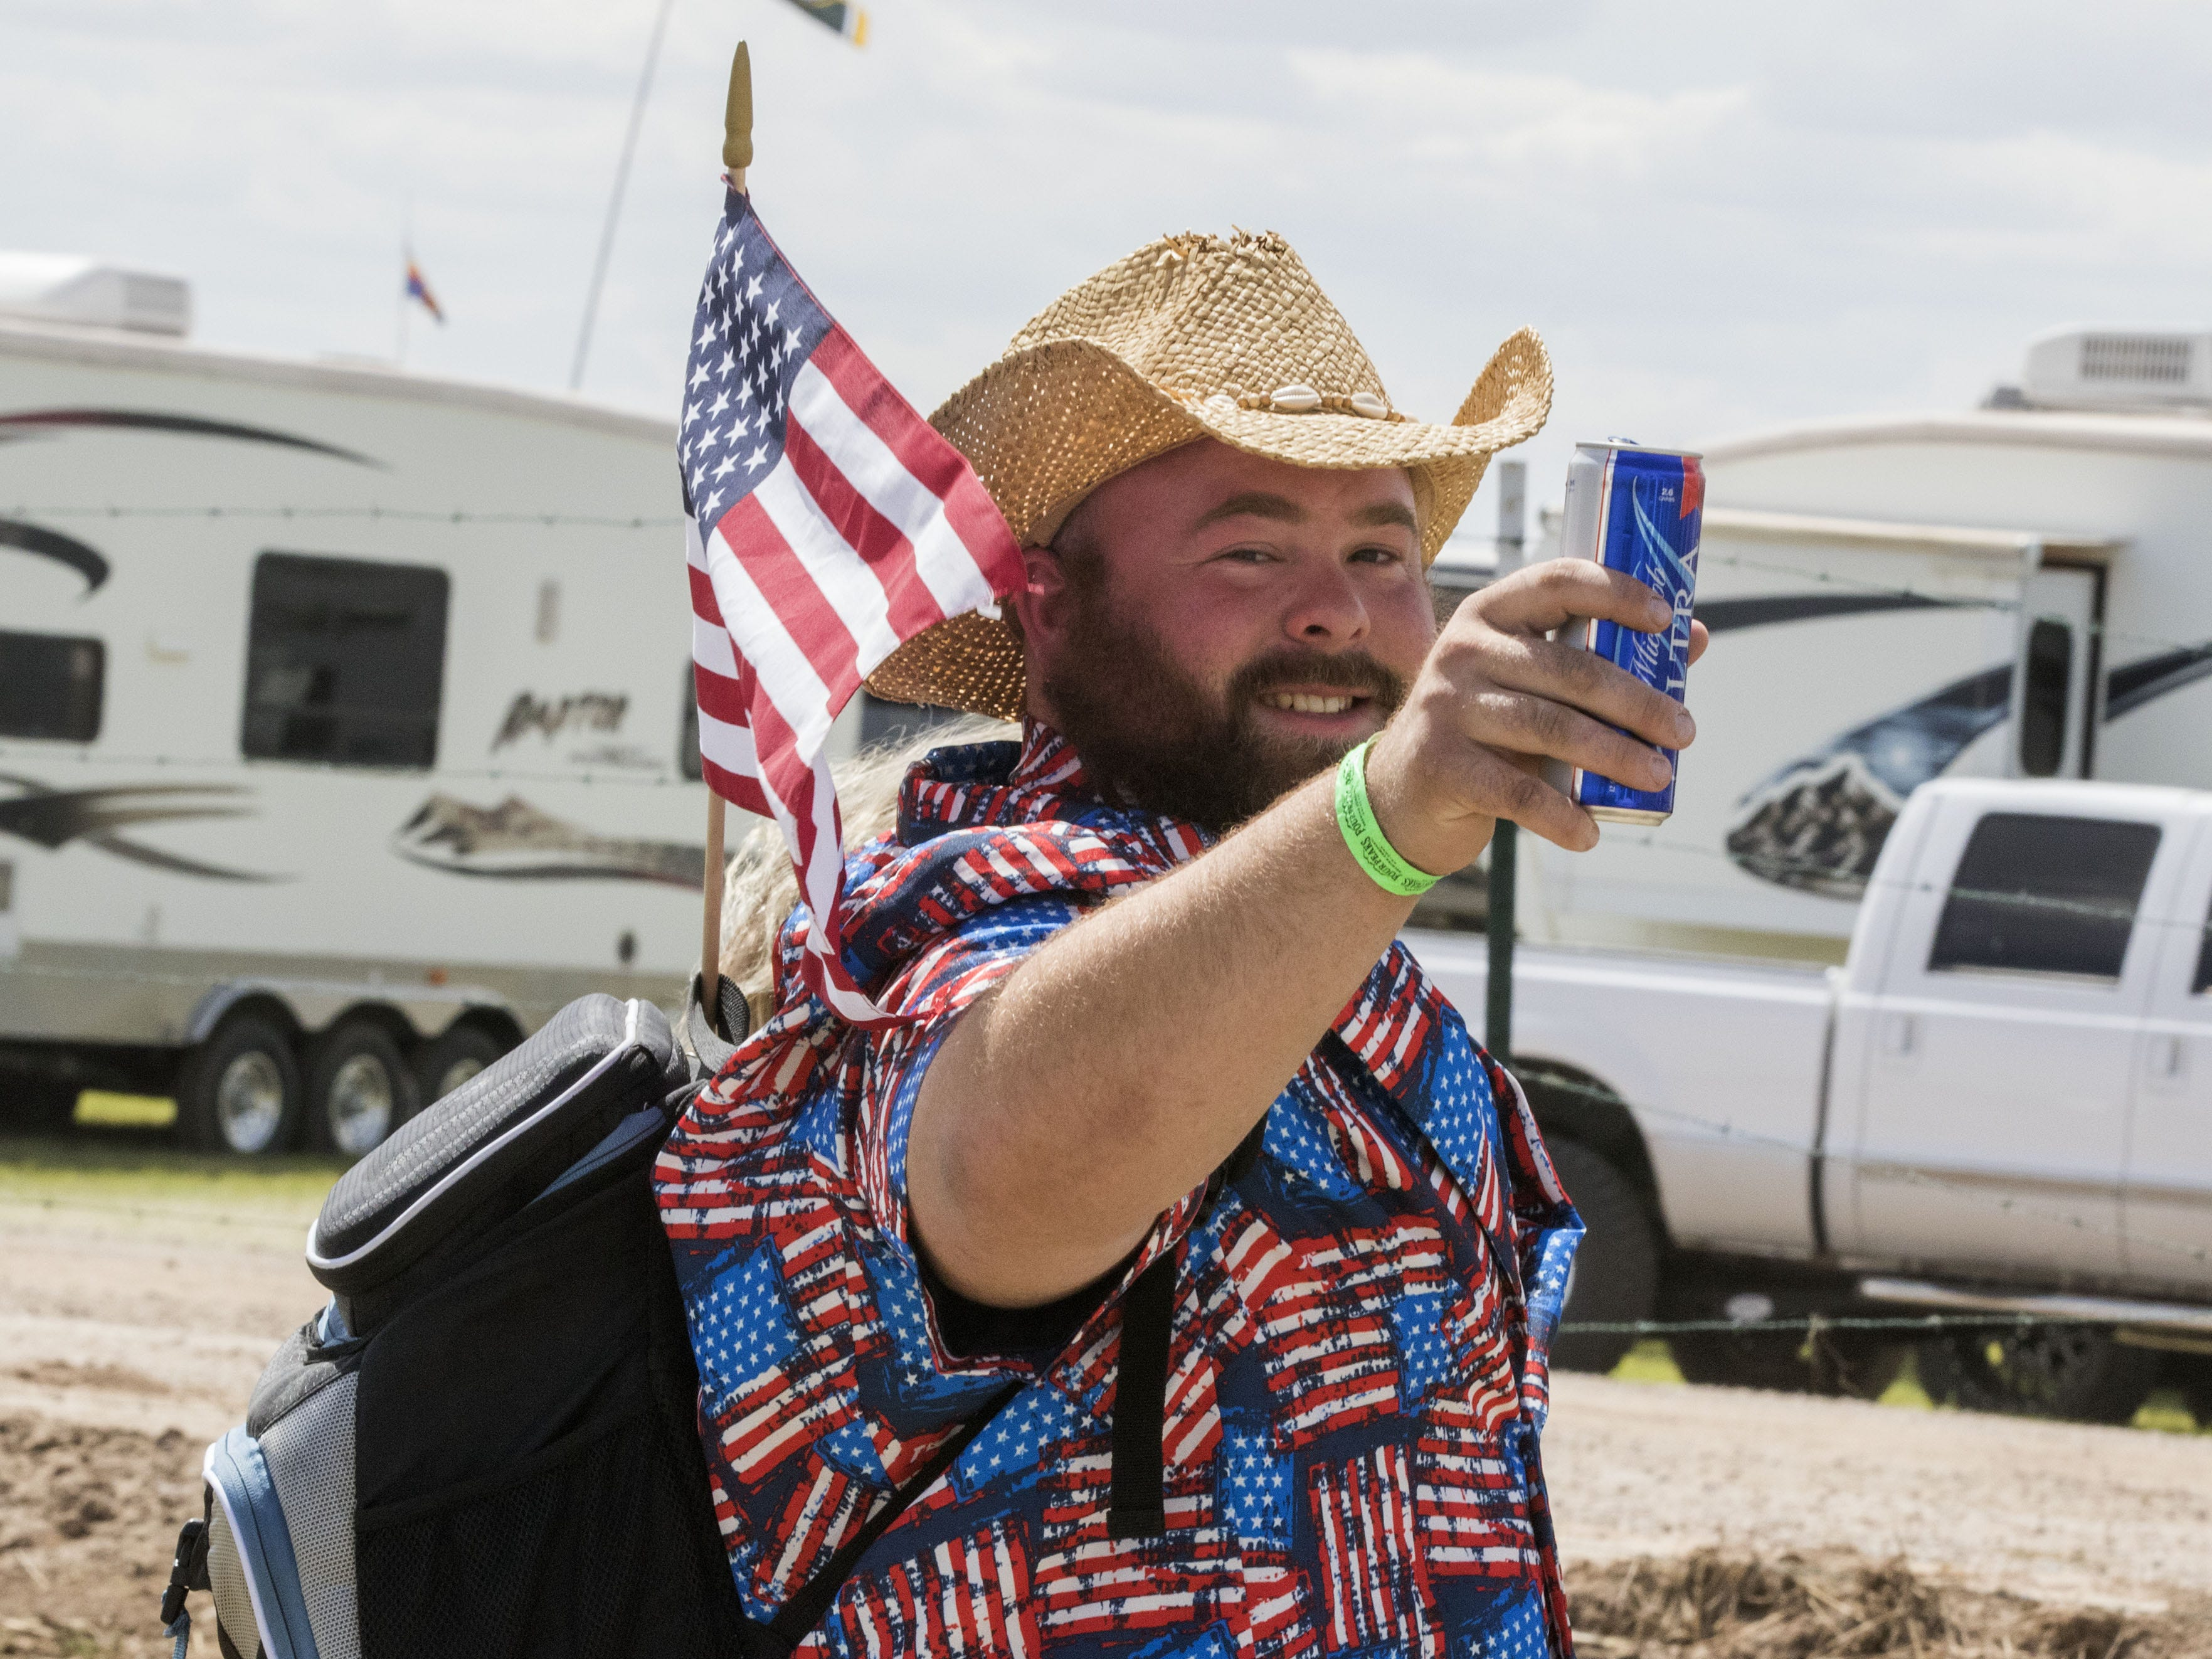 A party goer salutes the public with a beer during Country Thunder Arizona Friday, April 12, 2019, in Florence, Arizona.